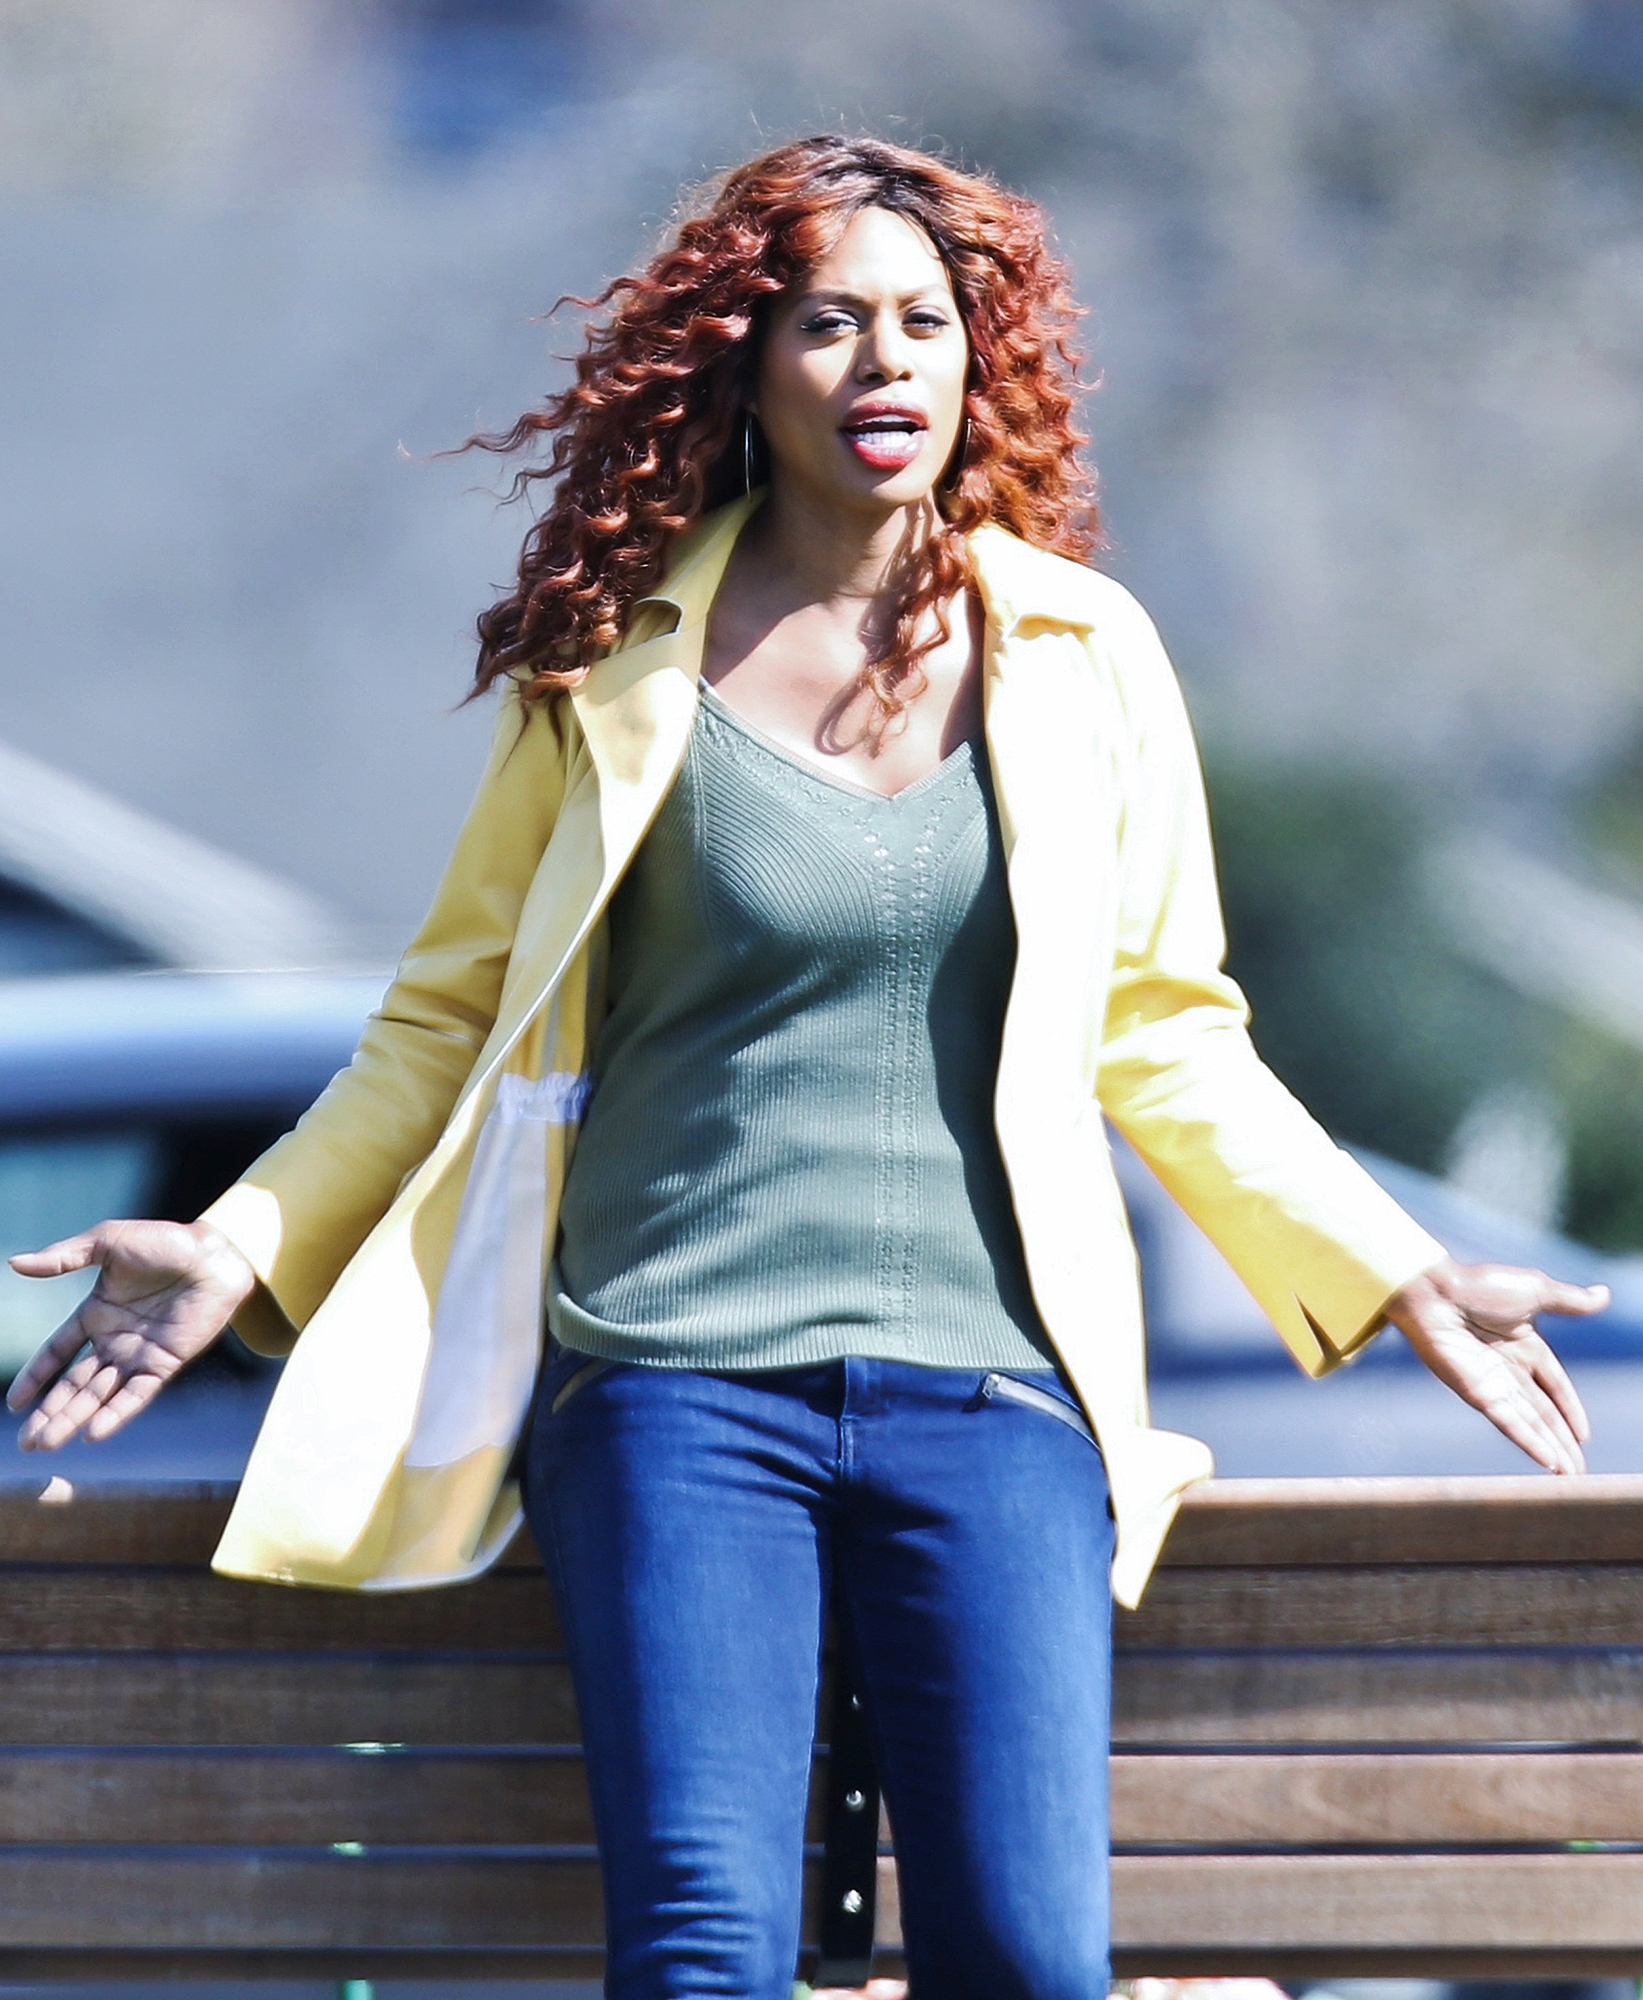 Exclusive... Laverne Cox And Meaghan Rath On The Set Of 'The Trustee' In Vancouver